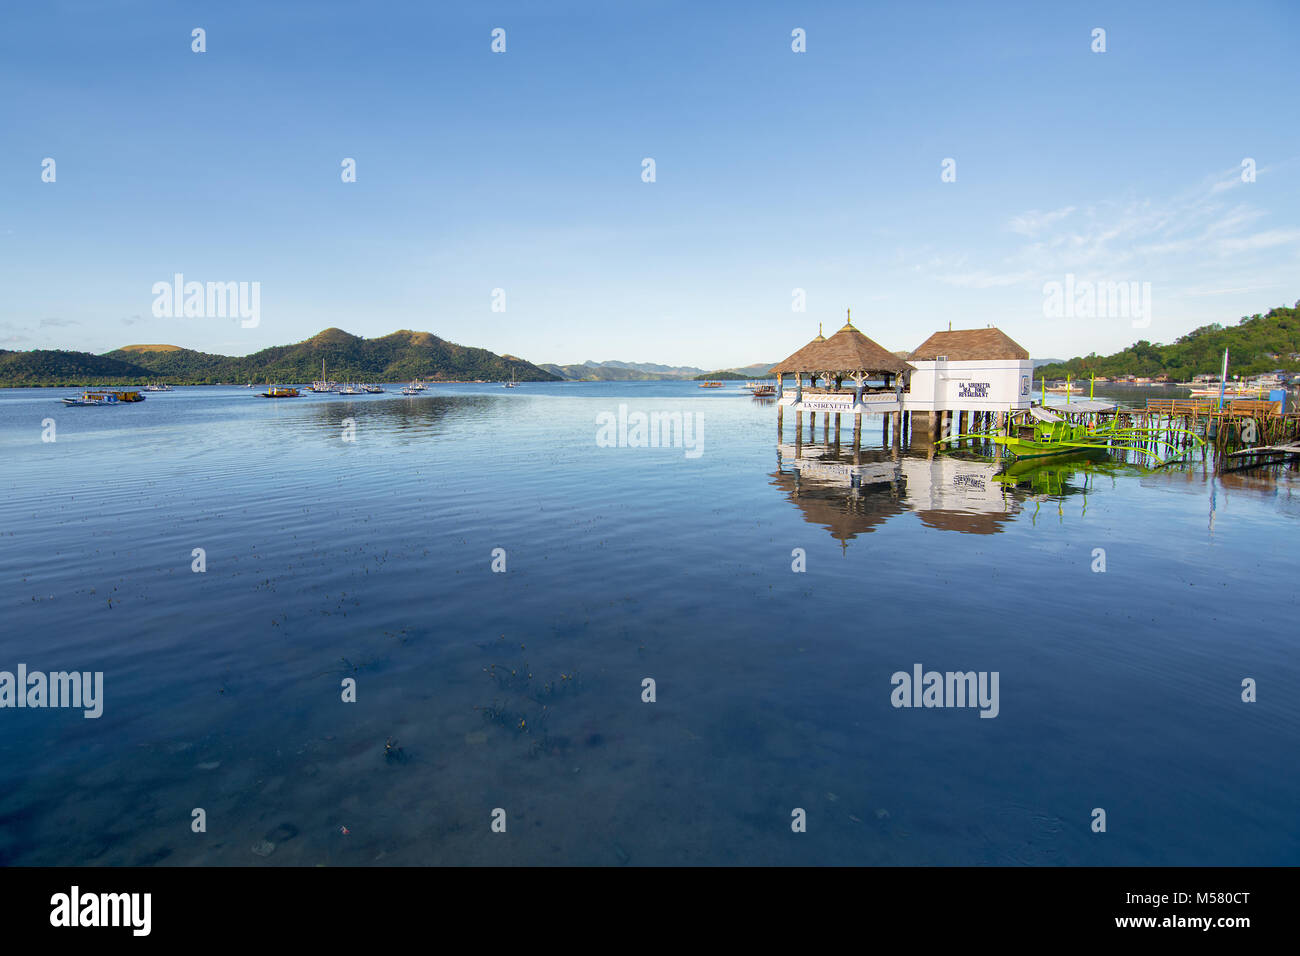 Still sea of Coron Harbor off of Palawan Island, Philippines. - Stock Image